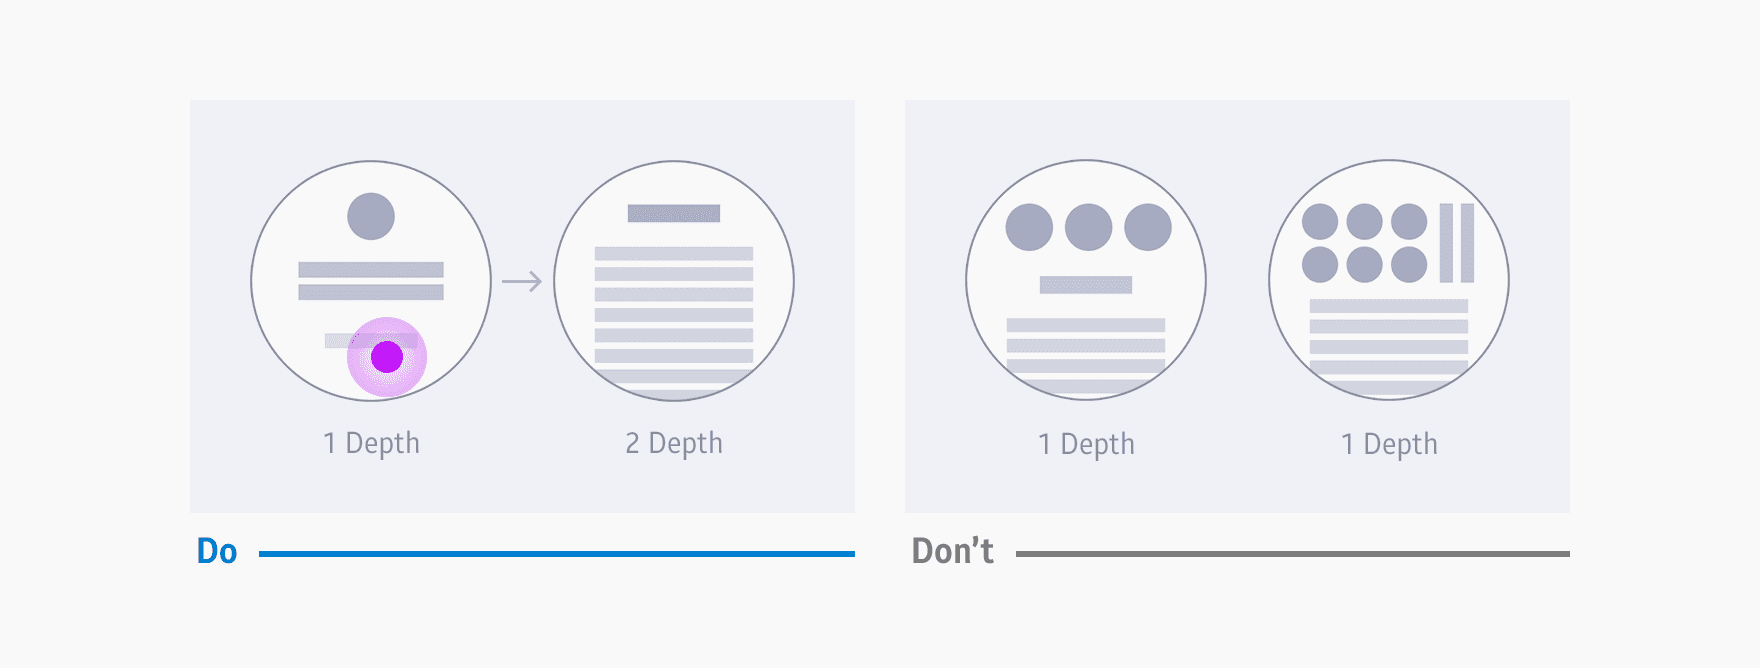 For content that does not fit into one screen, move less important content to the detailed view.